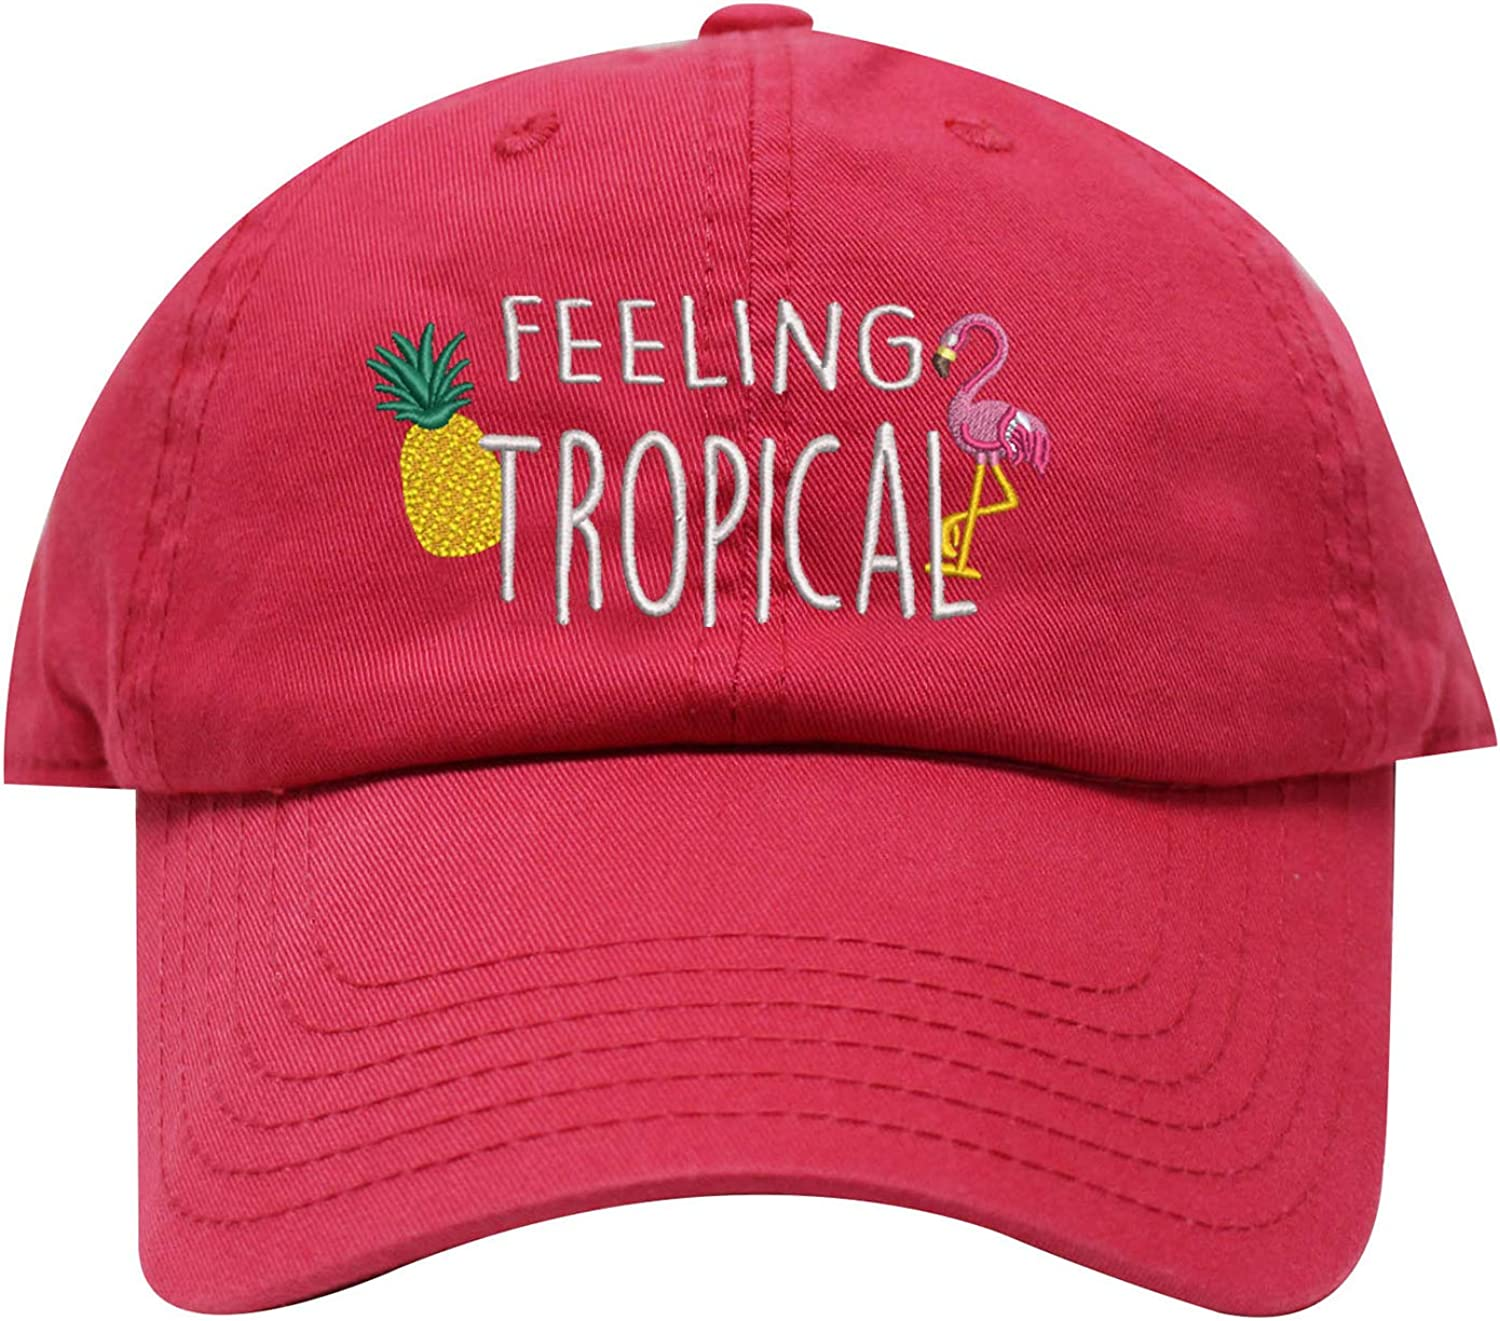 Indianapolis Mall INK STITCH Unisex USA Feeling Tropical 22 Cotton Baseball Caps Max 54% OFF -